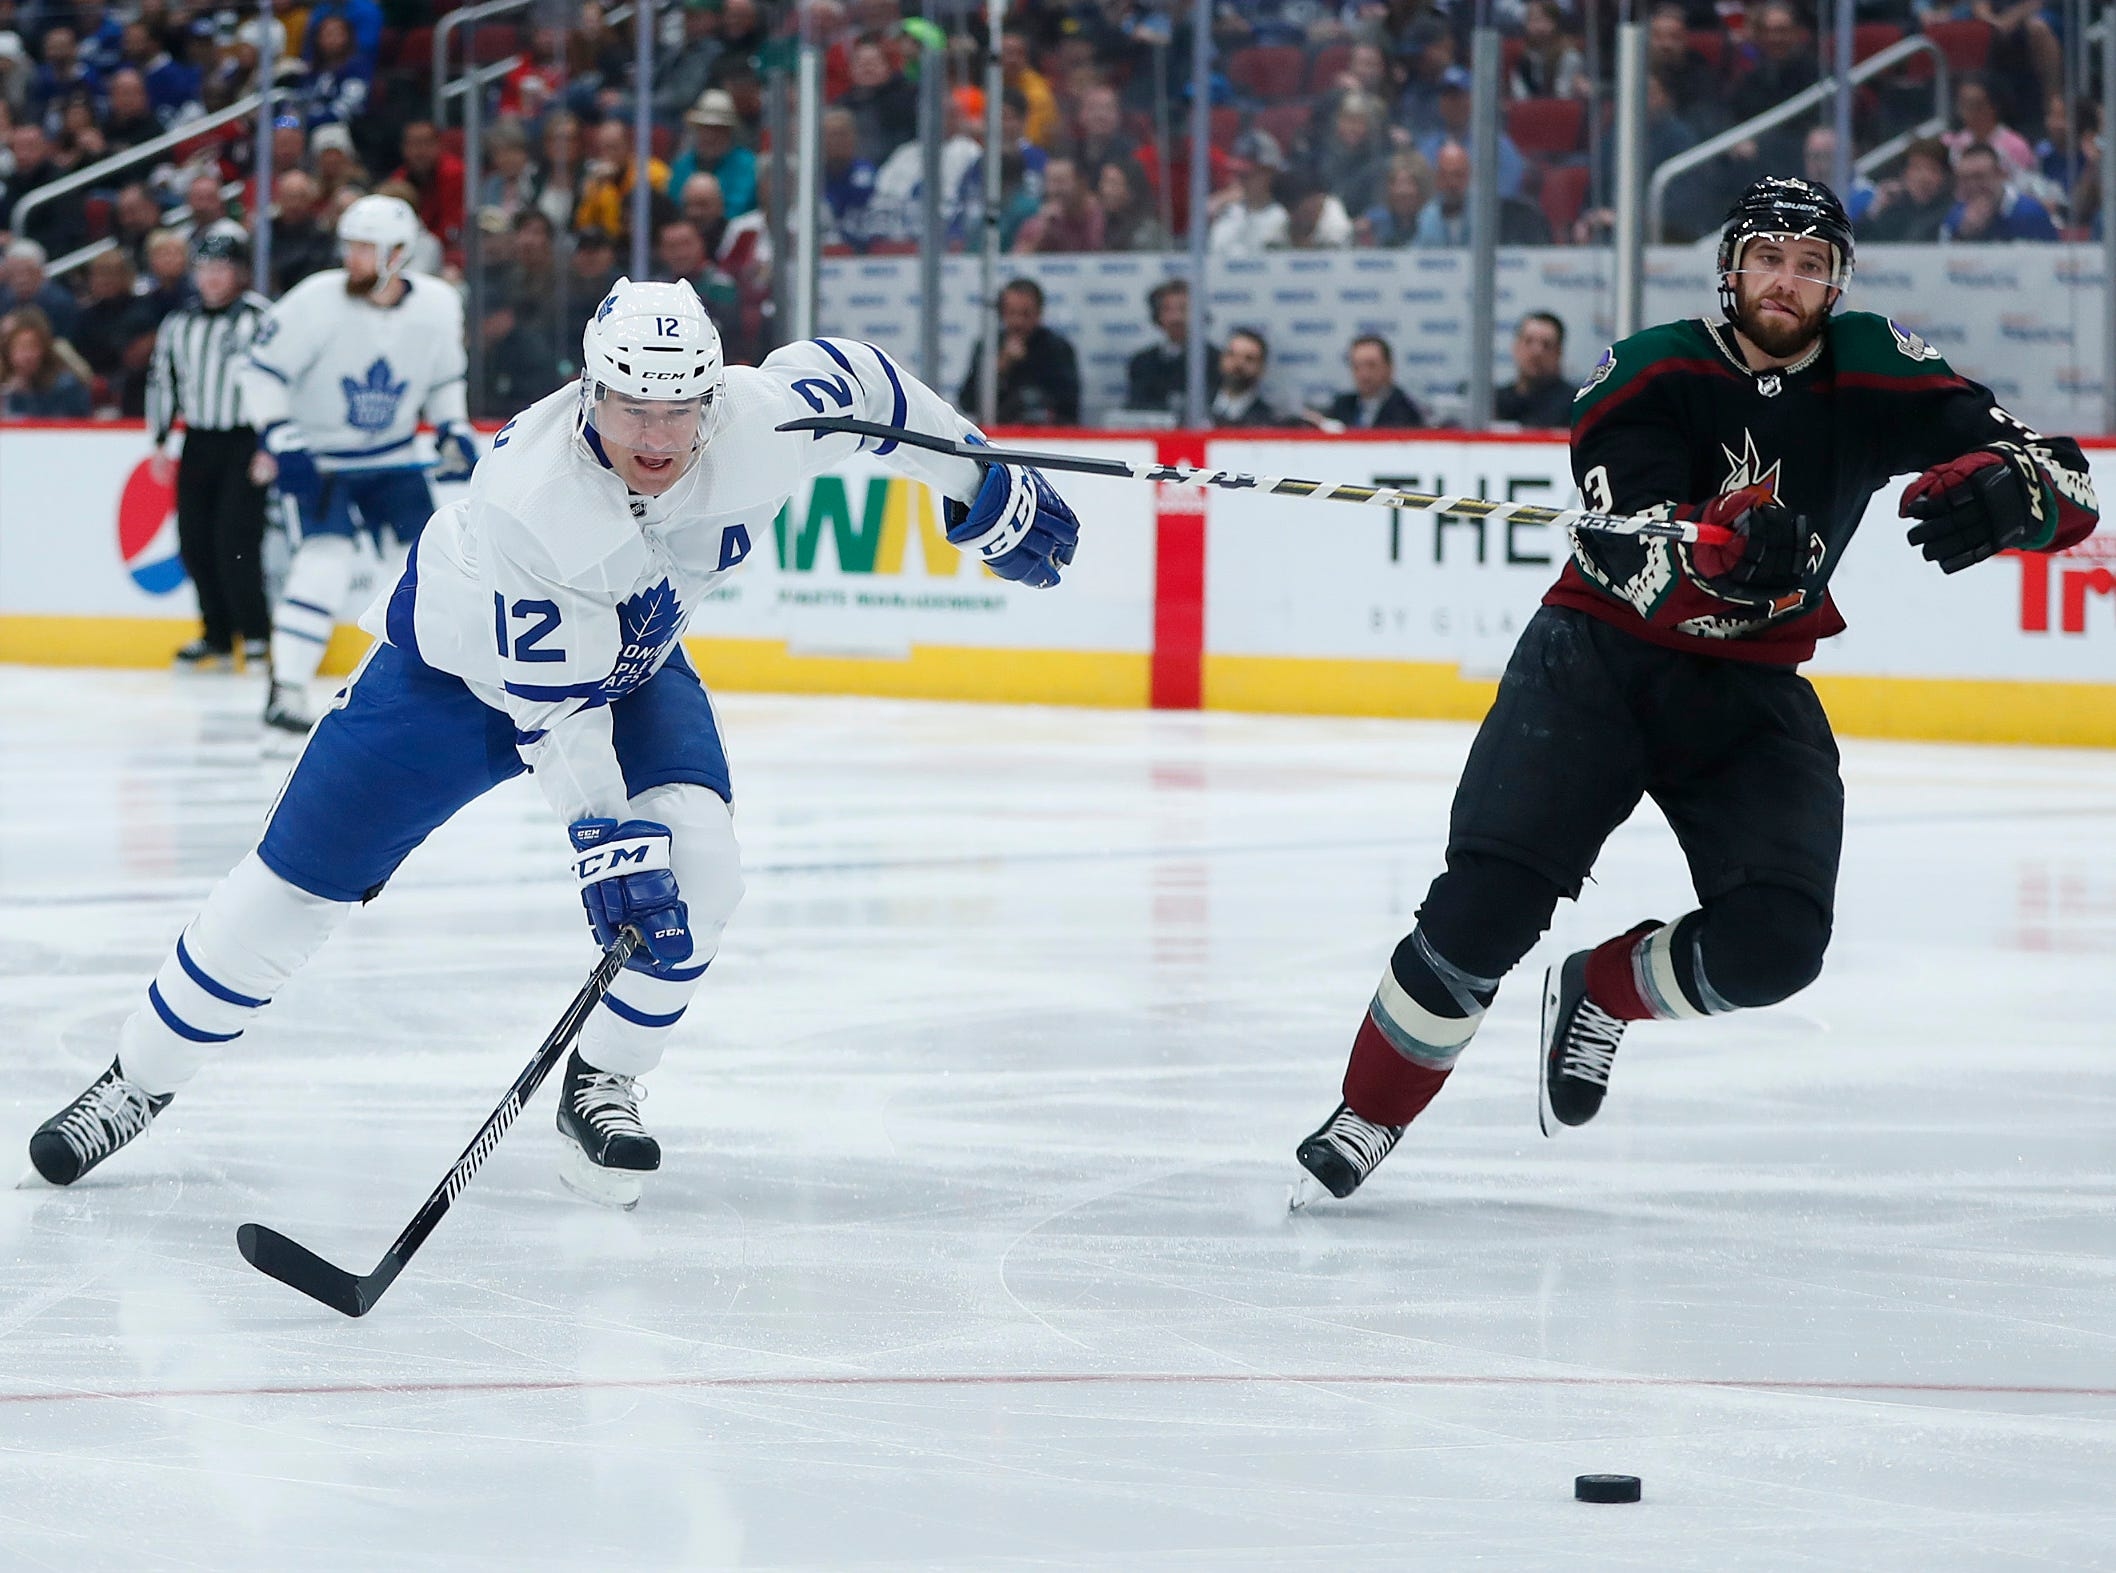 Coyotes' Alex Goligoski (33) and Maple Leafs' Patrick Marleau (12) during the first period at Gila River Arena in Glendale, Ariz. on February 16, 2019.